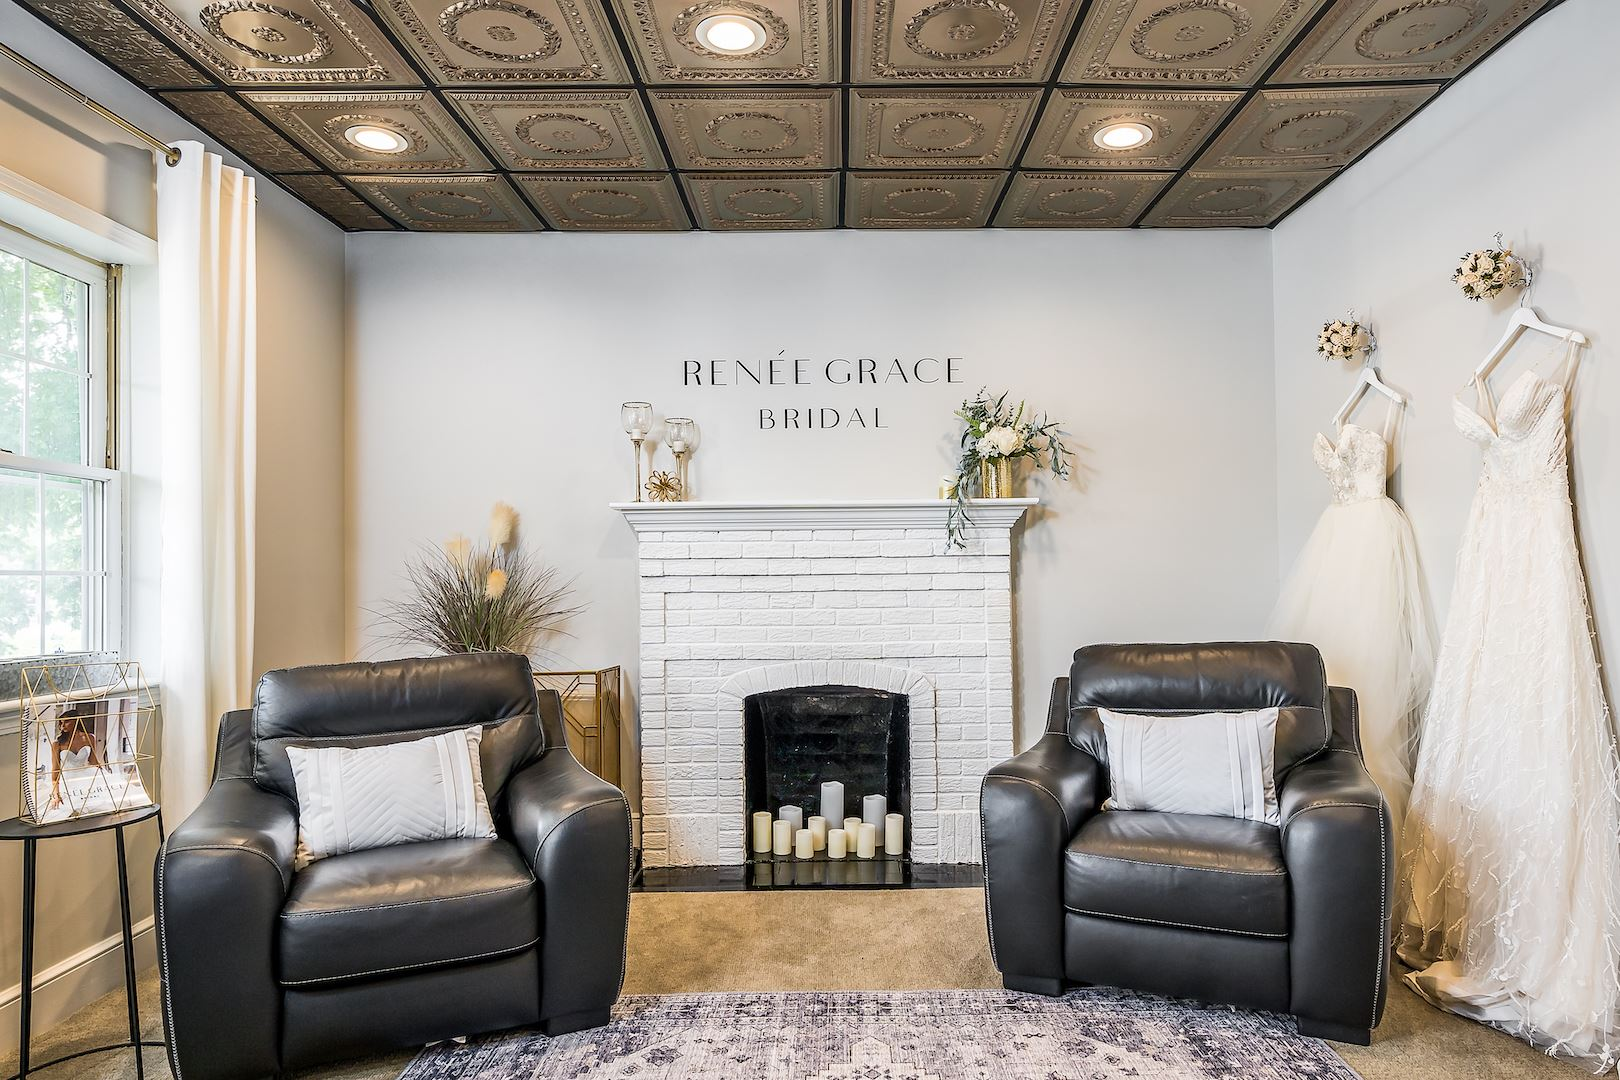 The Renee Grace Bridal Experience Image